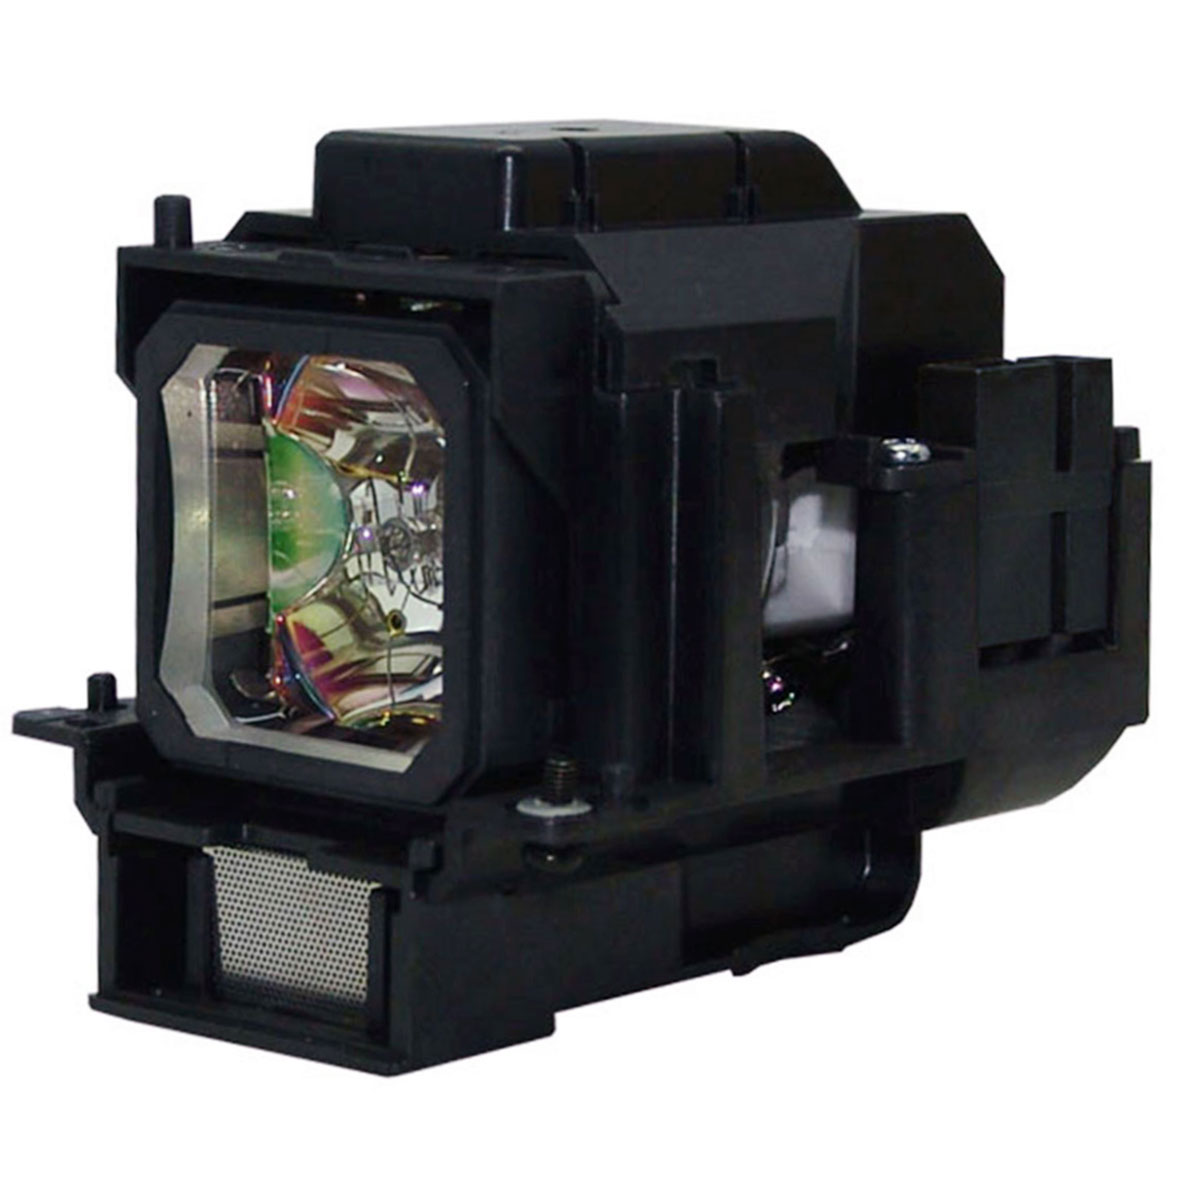 Dukane 456-8771 / 4568771 Ushio Original Projector Lamp Housing DLP LCD